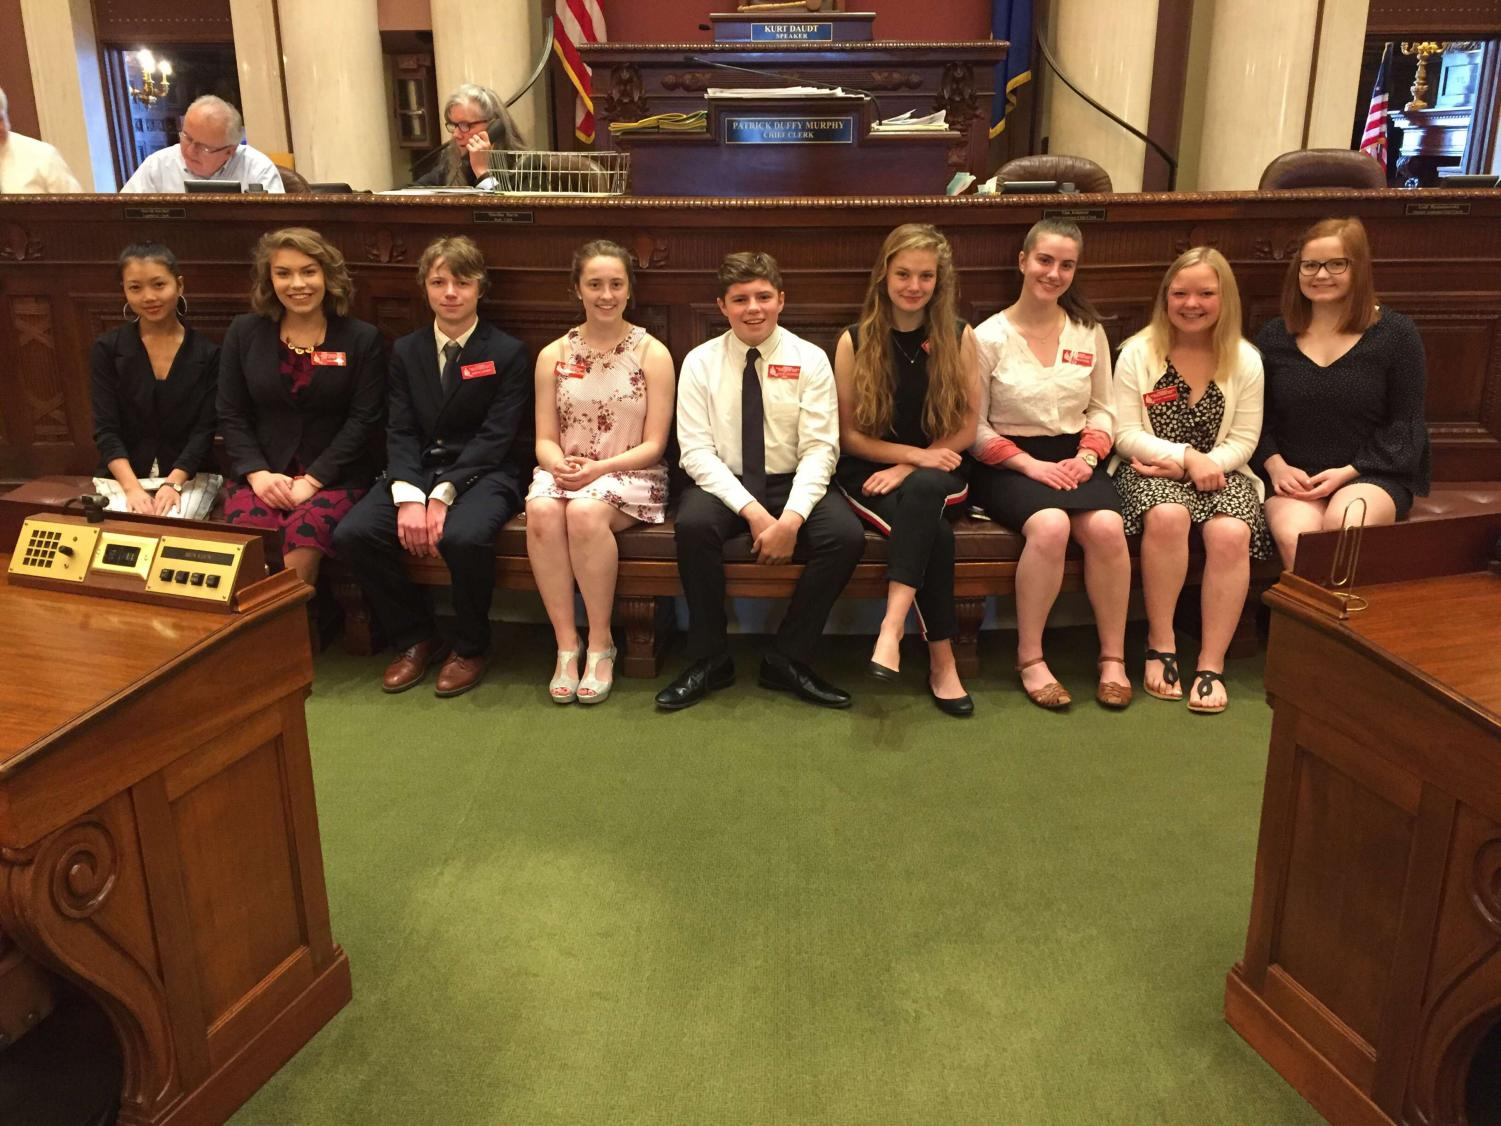 Junior Kaia Larsen posed with the other students who were part of the week long MN page program.